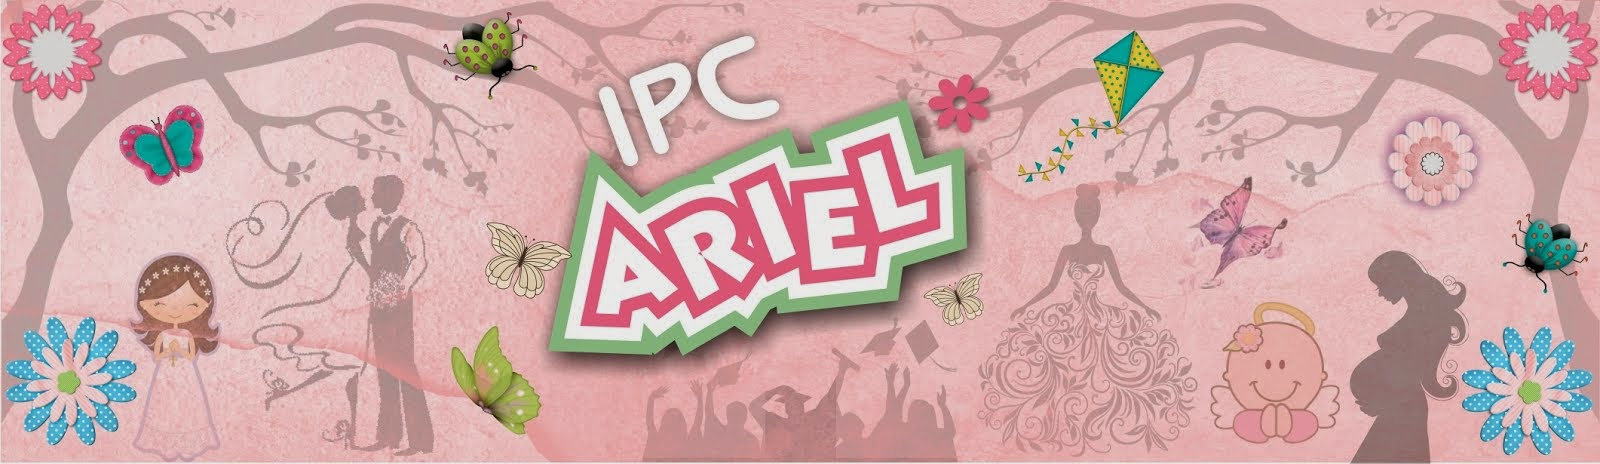 IPC Ariel: Imprenta y Copias